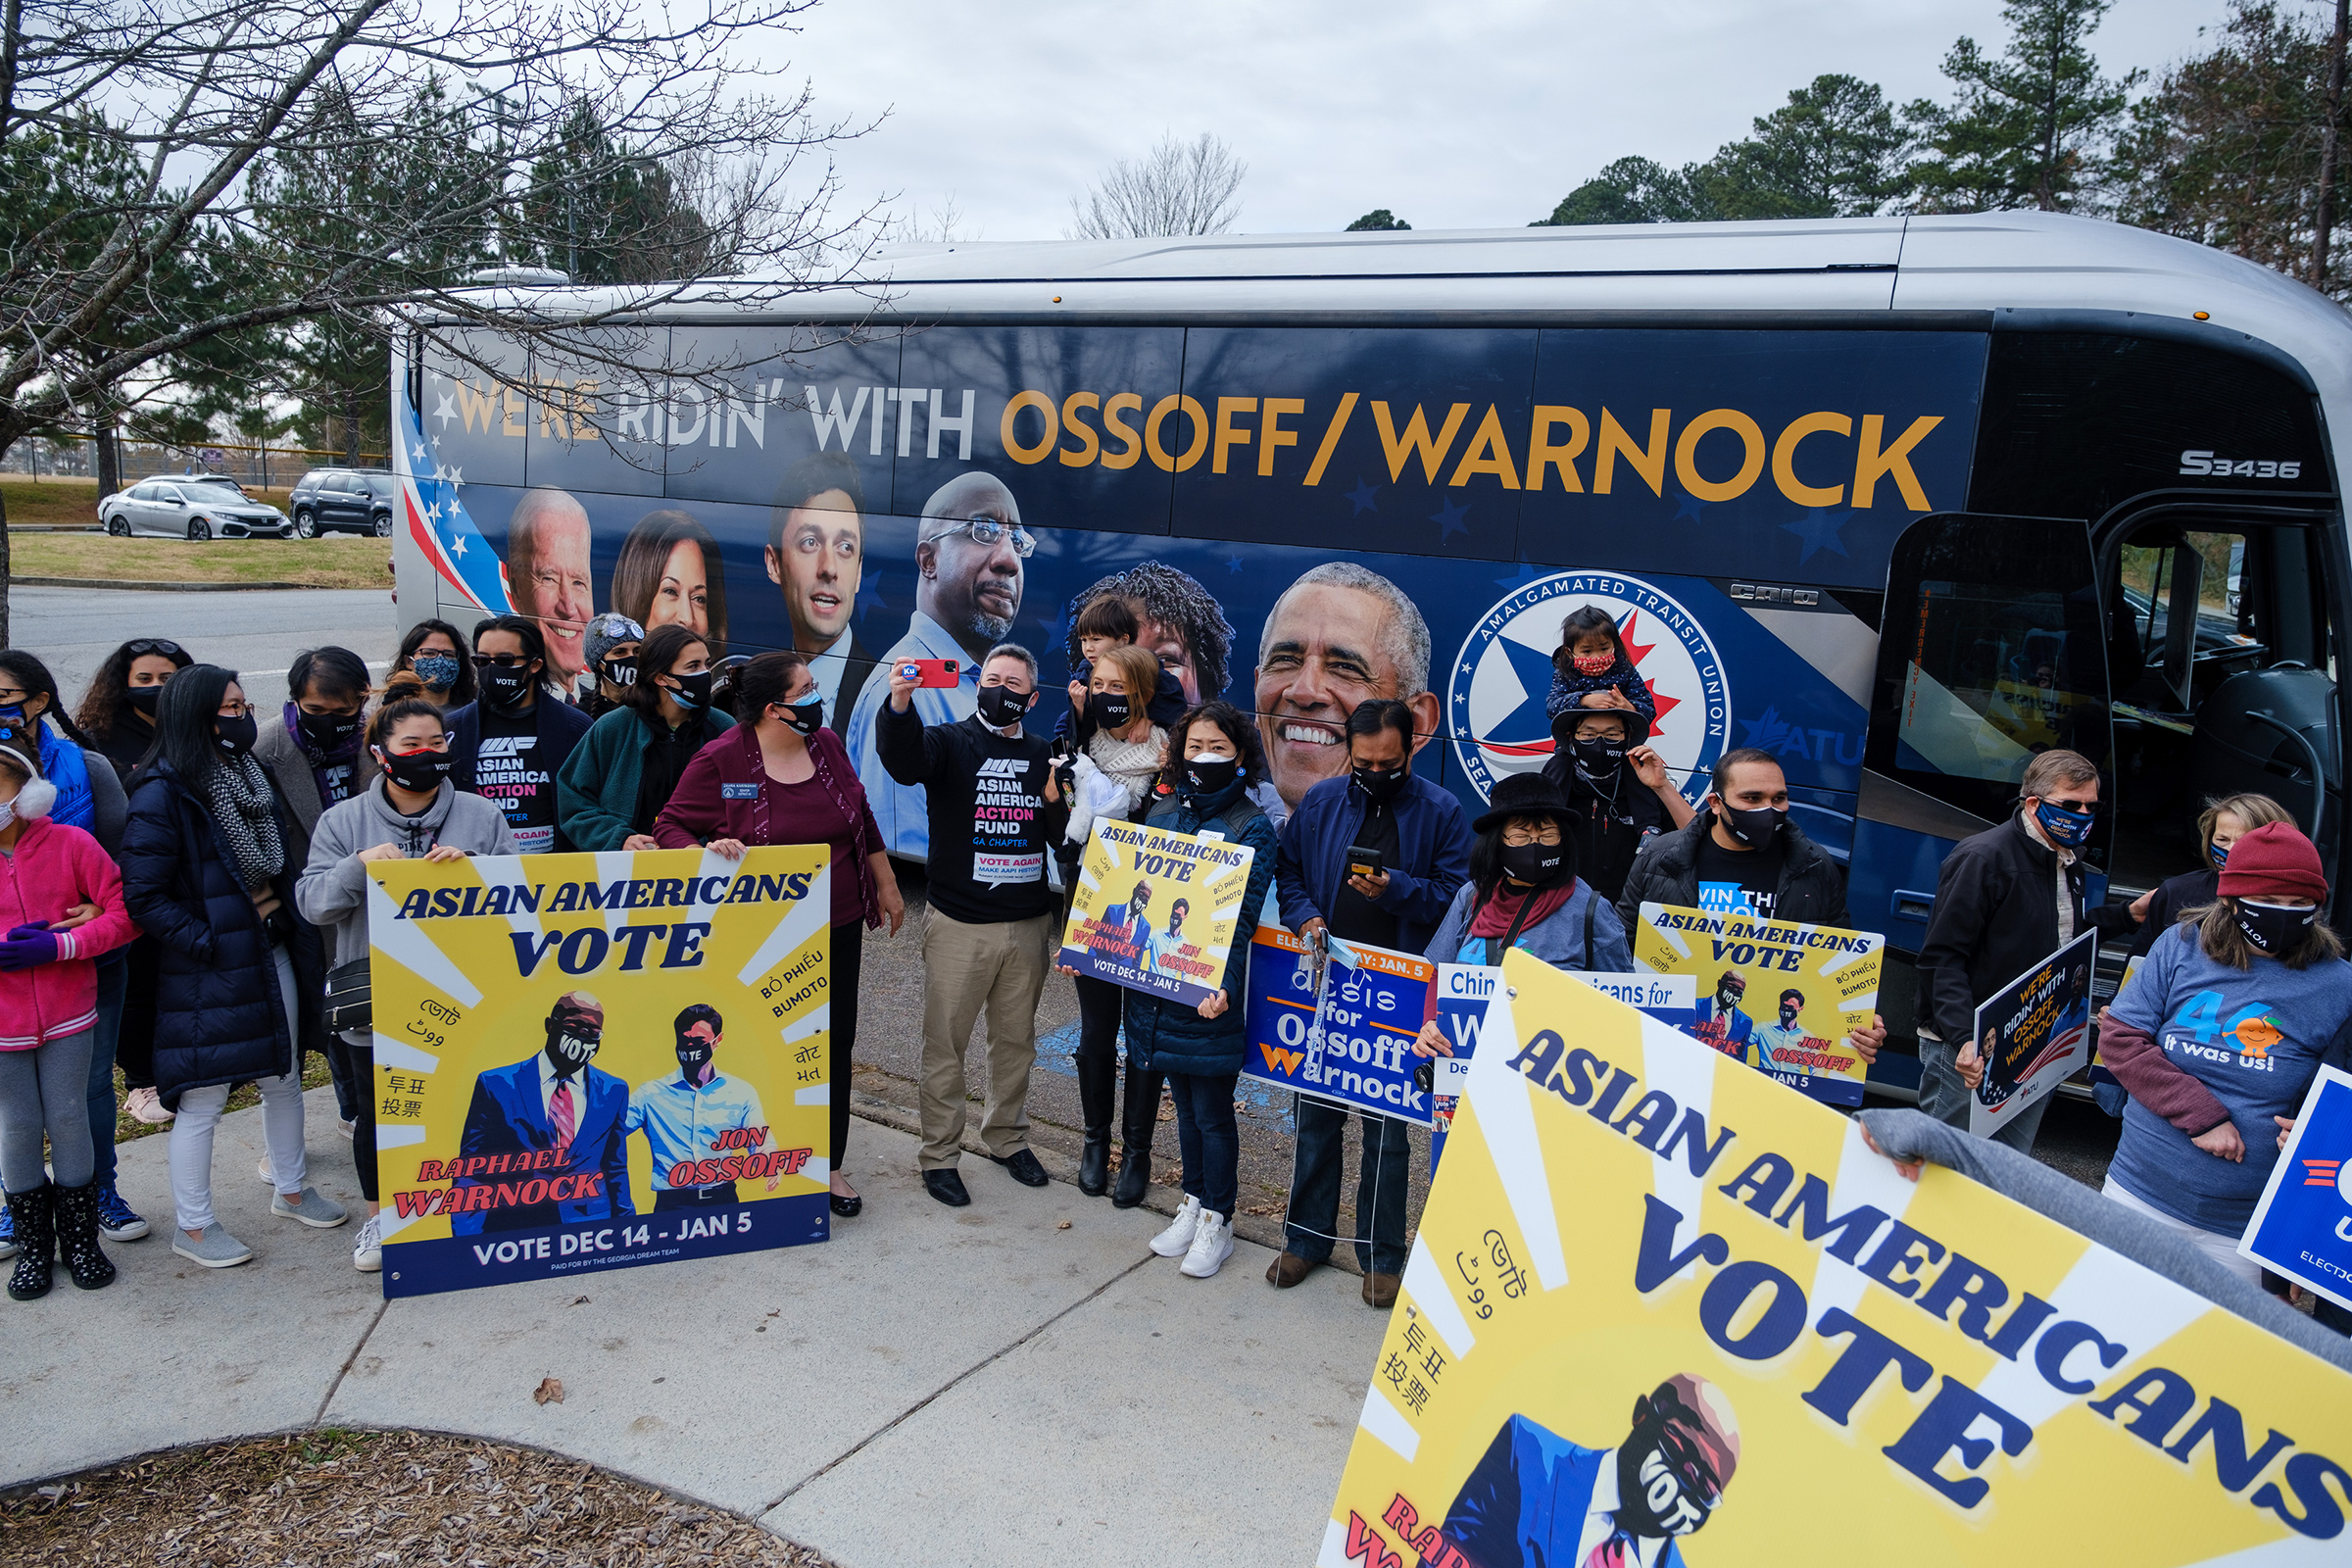 Supporters of Democratic senate candidates Rev. Raphael Warnock and Jon Ossoff gather at Shorty Howell Park in Duluth, Georgia on Dec. 20 for a  K-Pop Dance Rally  early voting event. The event was organized by the Georgia chapter of the Asian American Action Fund, a Democratic PAC